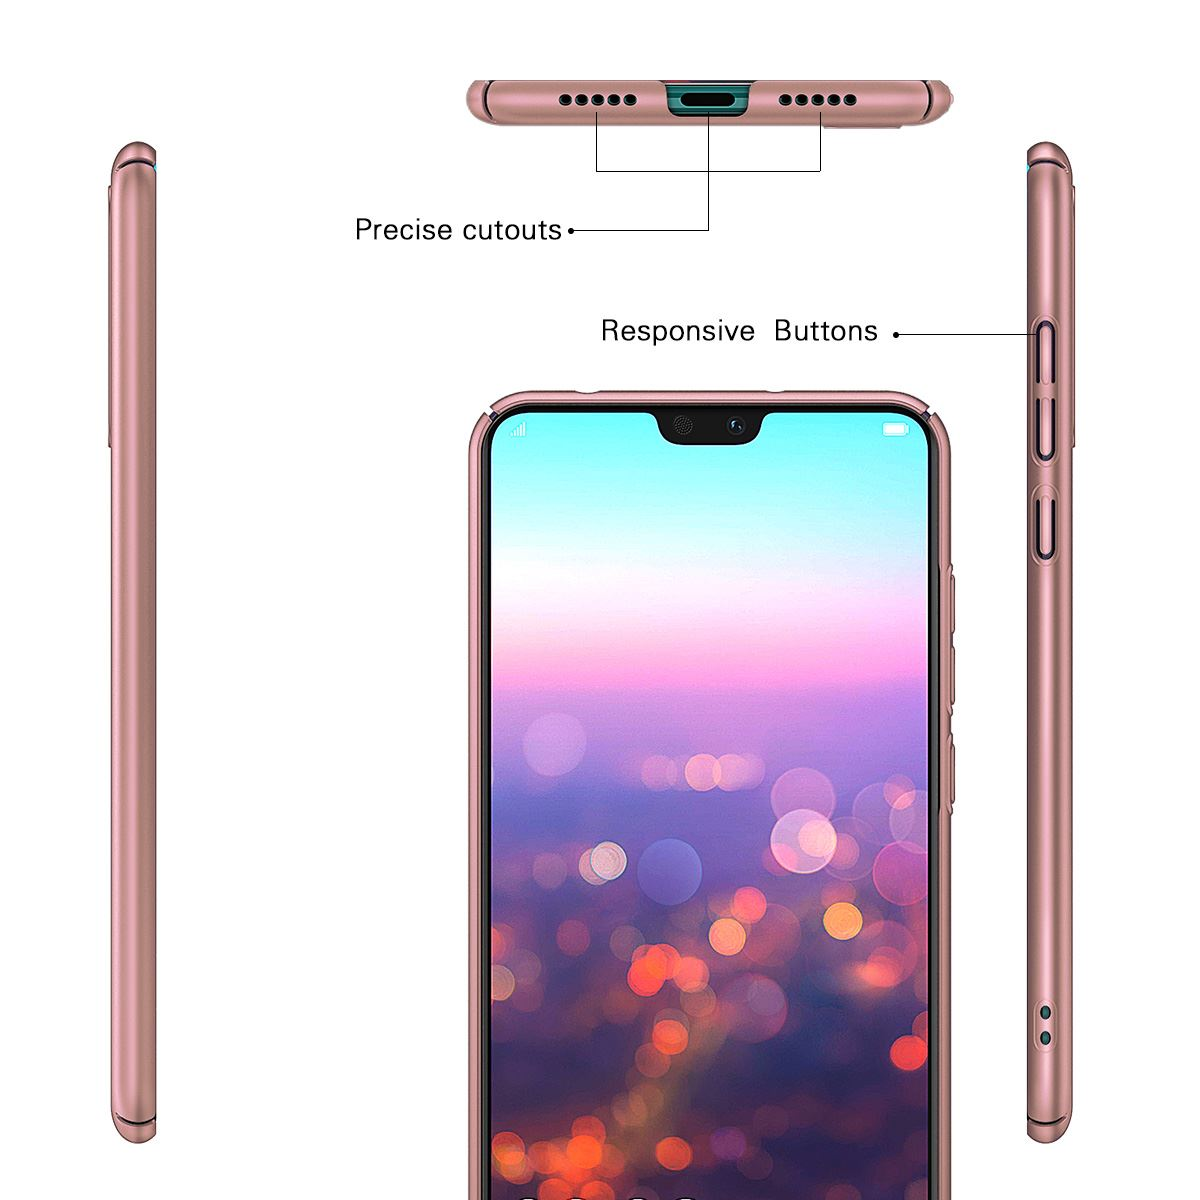 Luxury-Protective-Slim-Thin-Hard-Back-Case-Cover-For-Huawei-P20-Pro-P10-P-Smart thumbnail 36